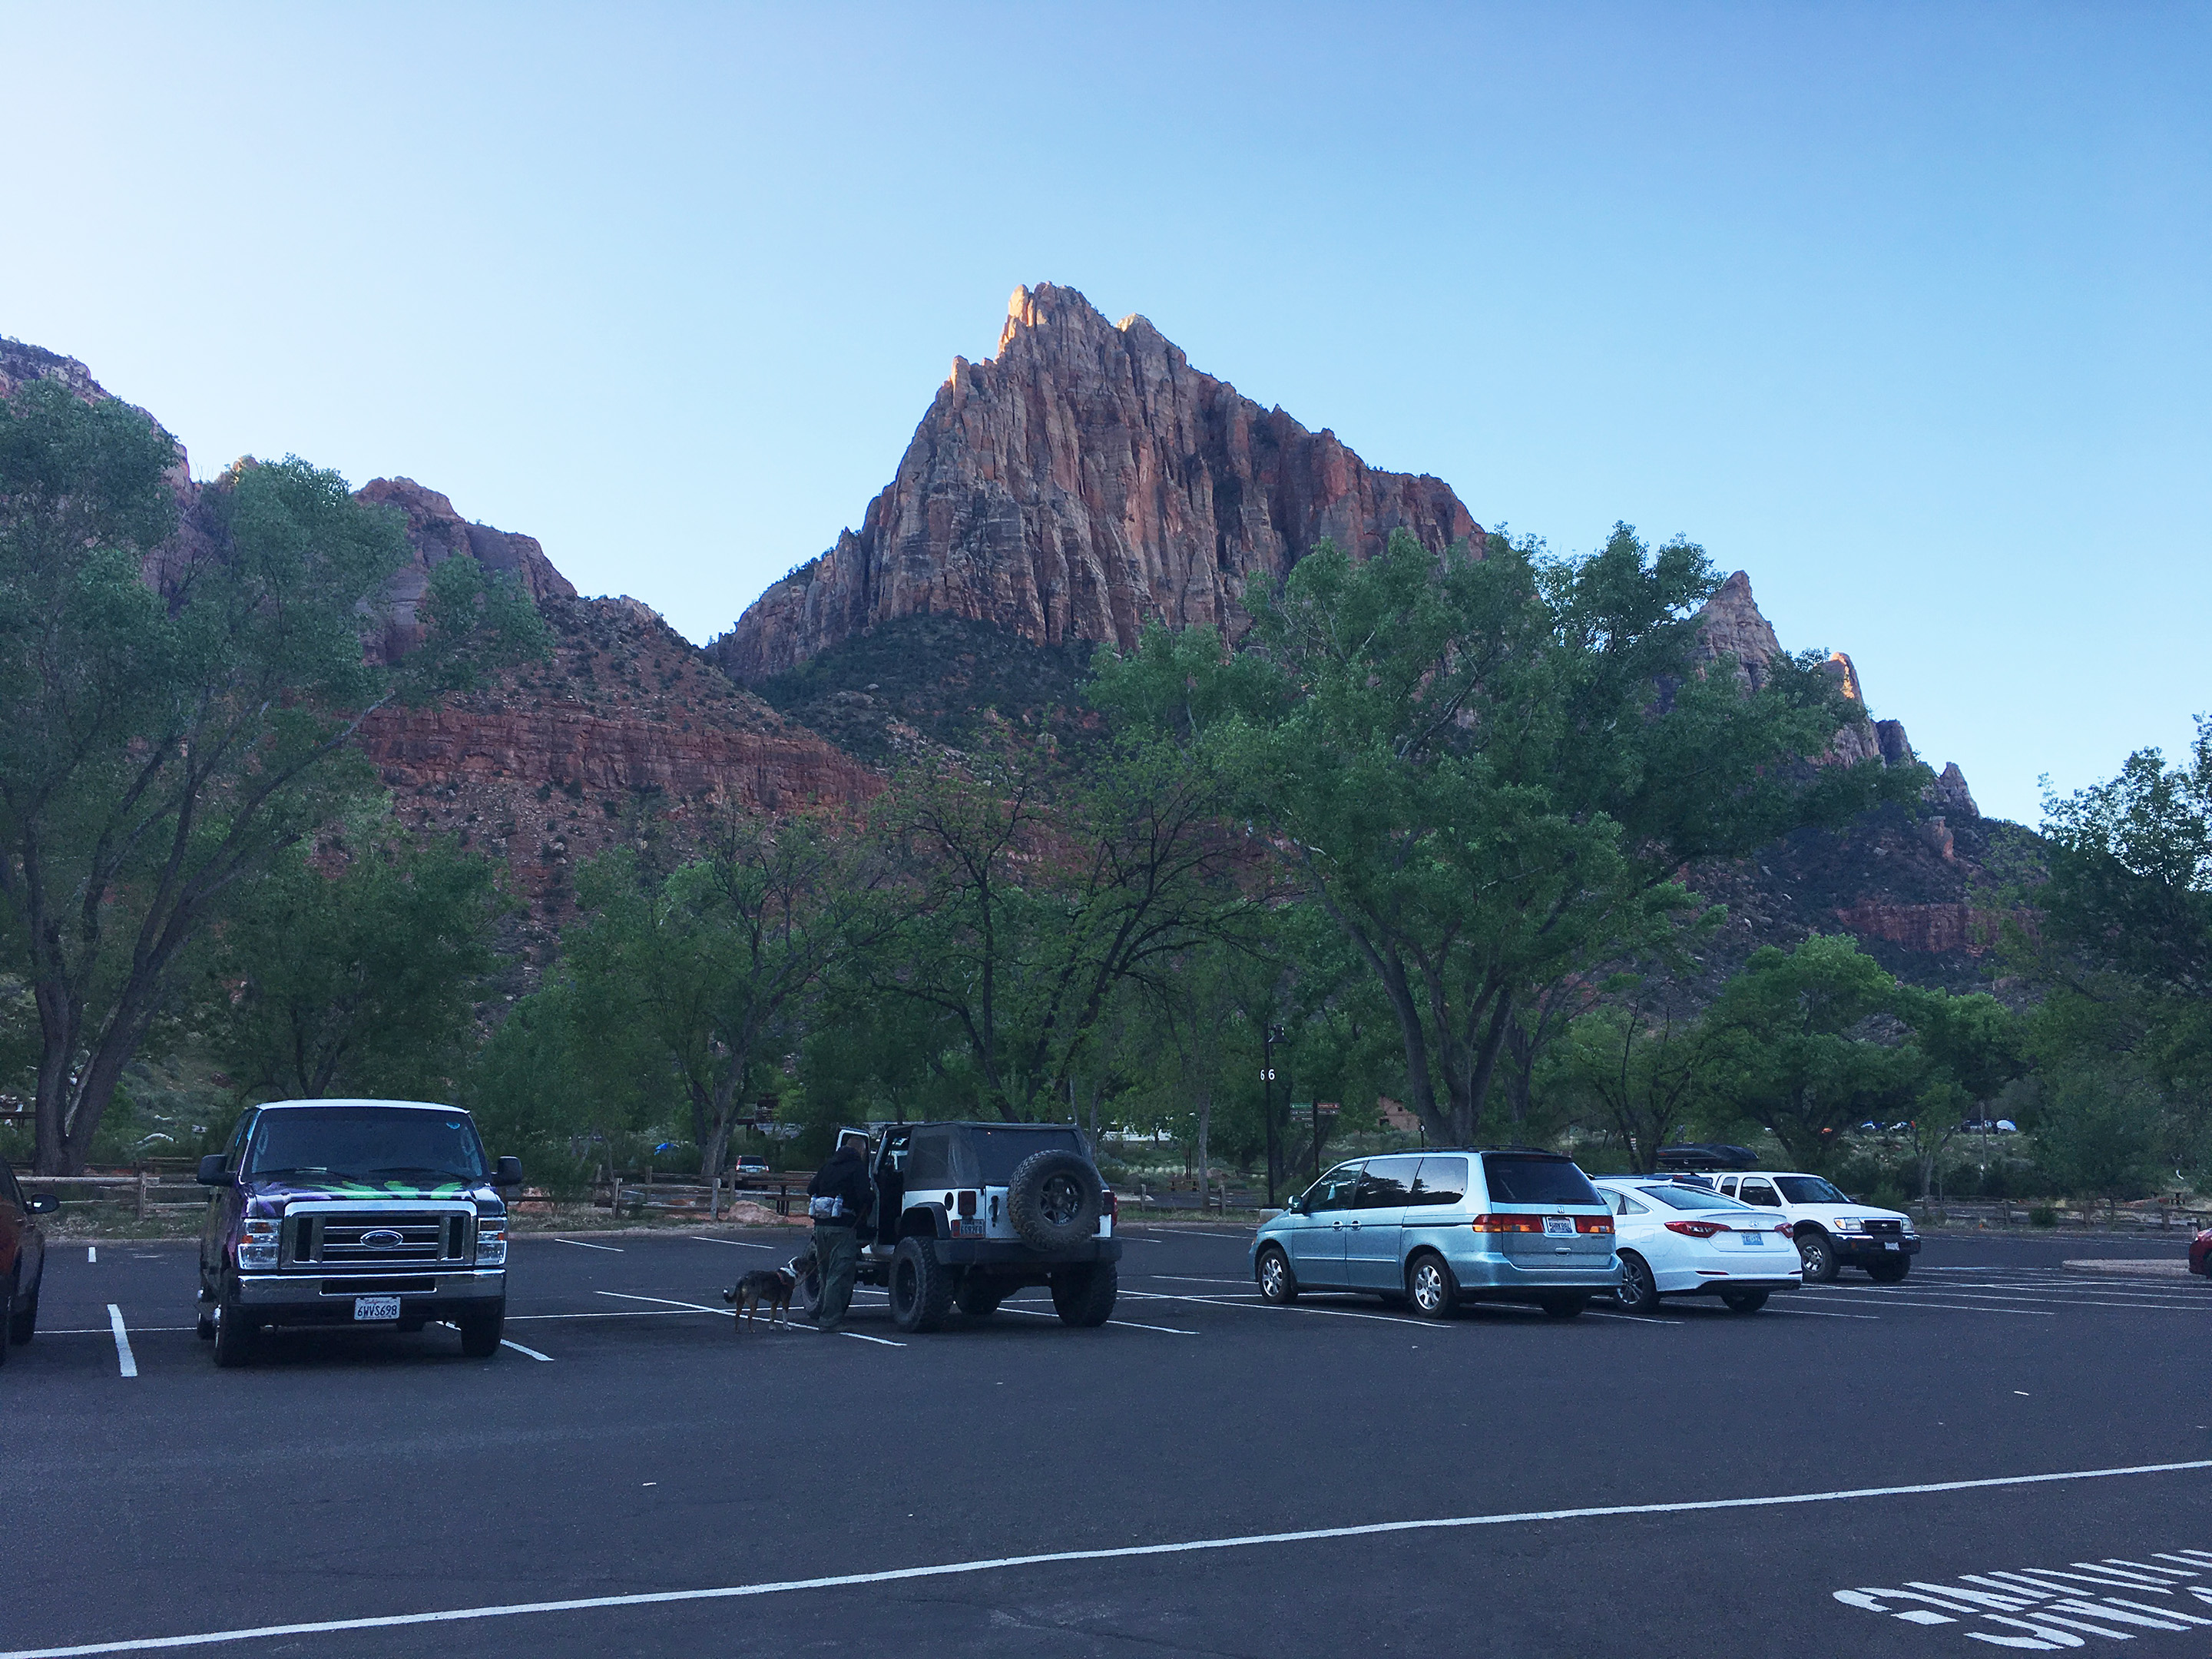 Zion's visitor center parking lot